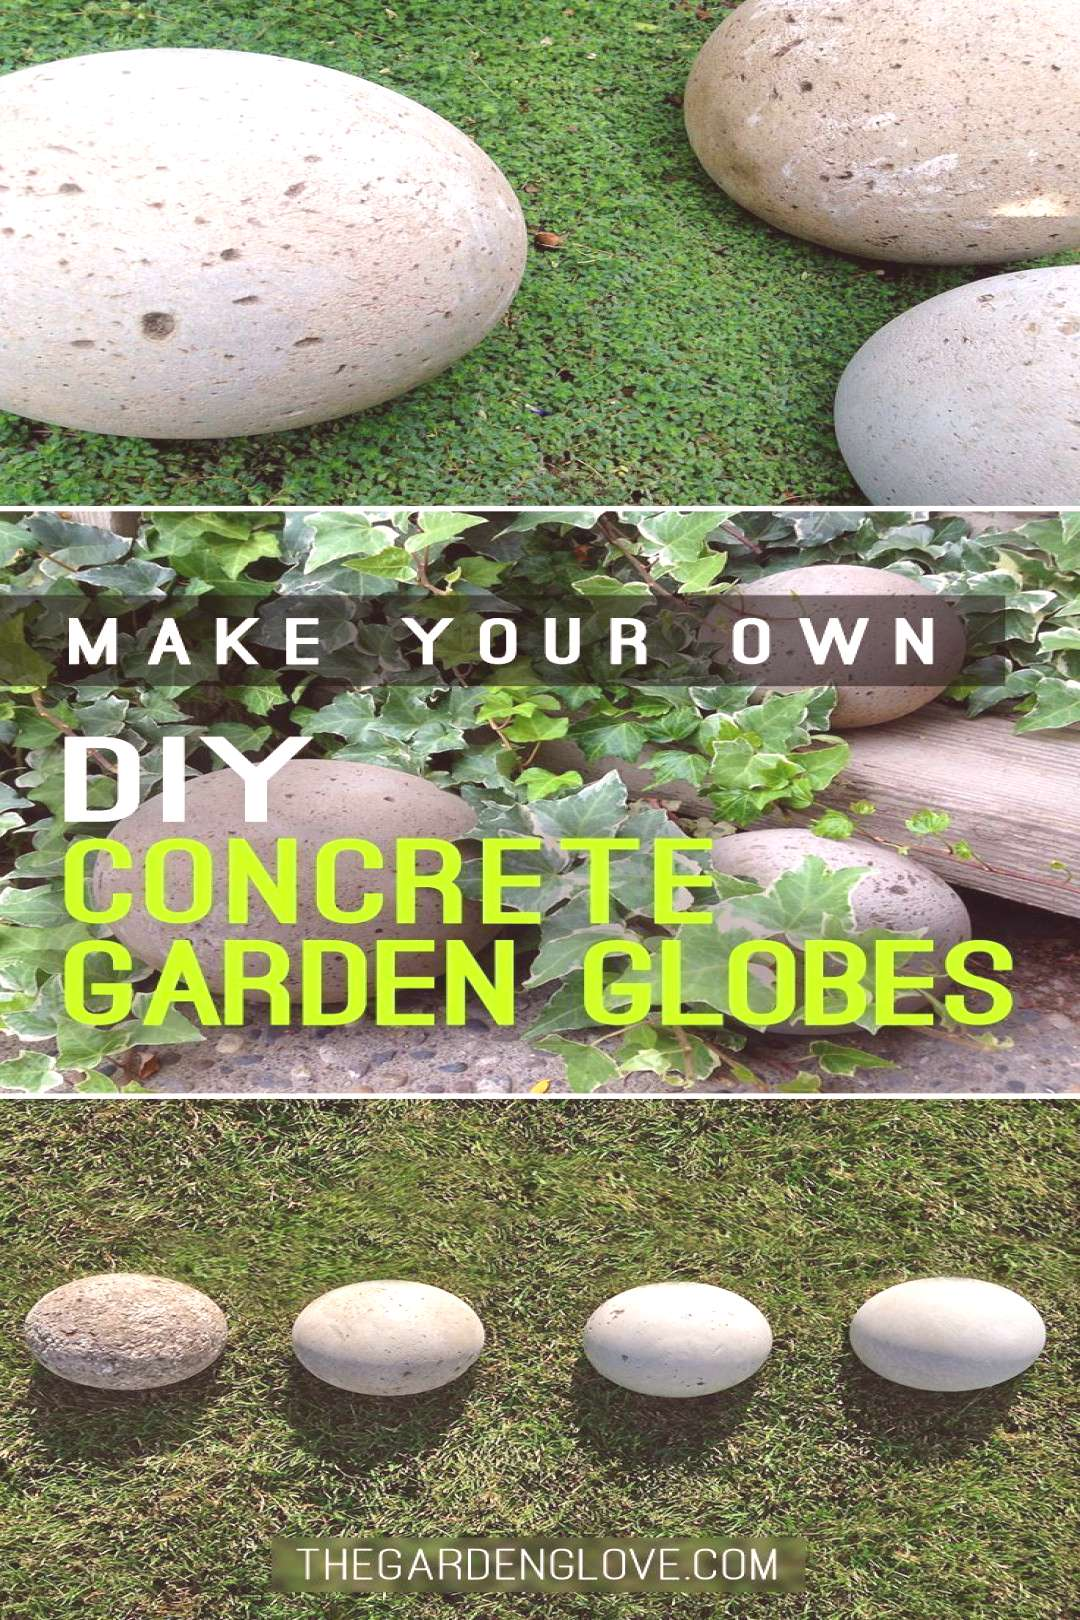 Make Your Own DIY Concrete Garden Globes! • Click thru to see the easy step by step tutorial for